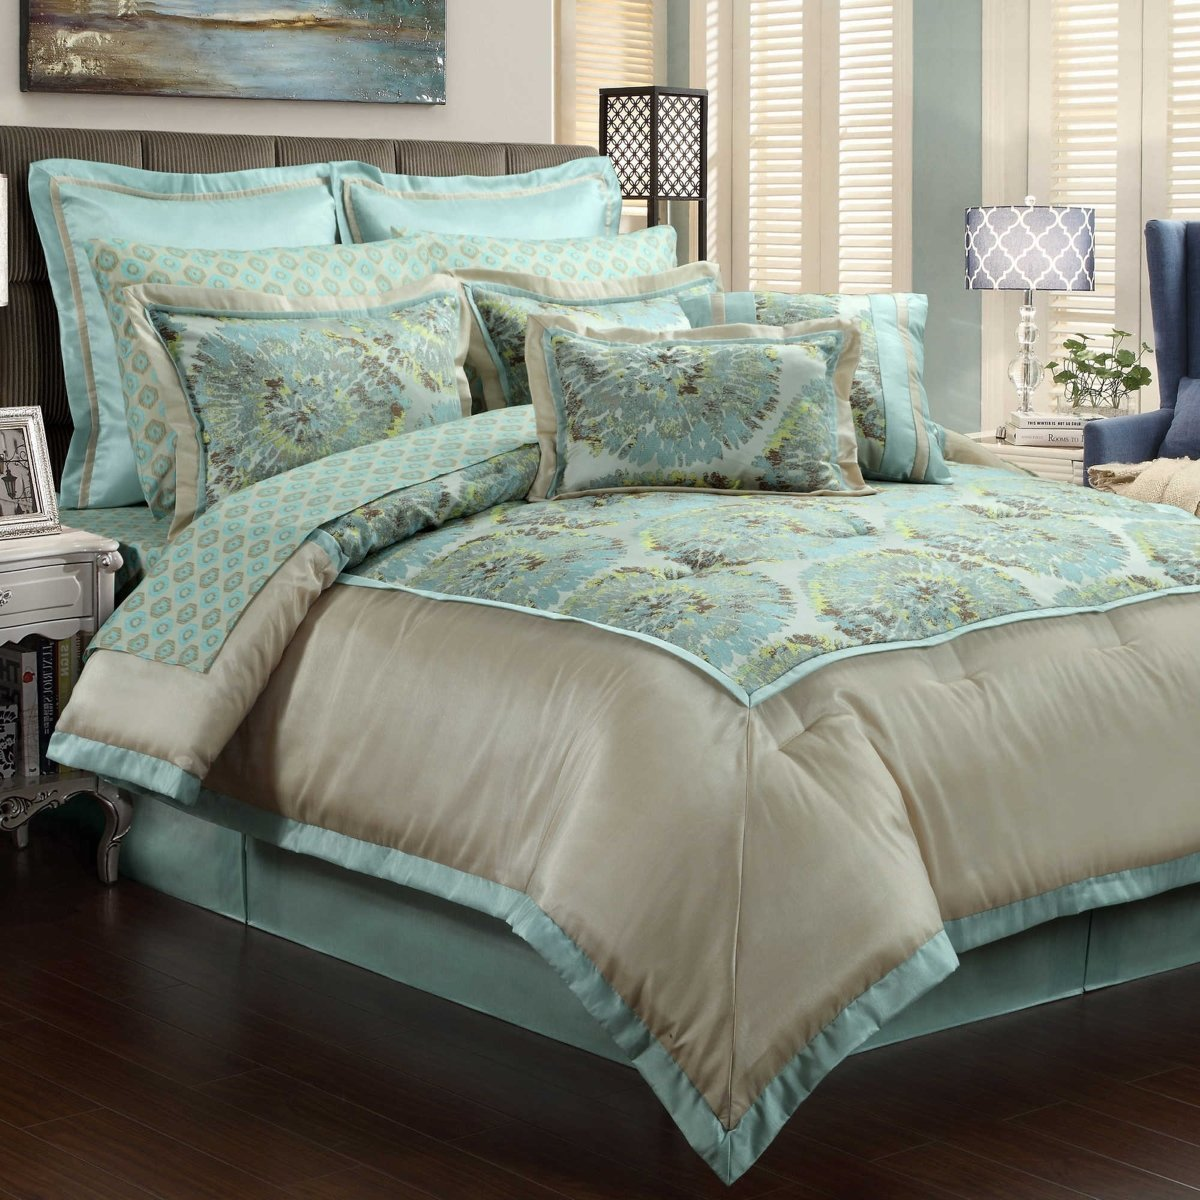 queen bedding sets freedom of life like a queen home